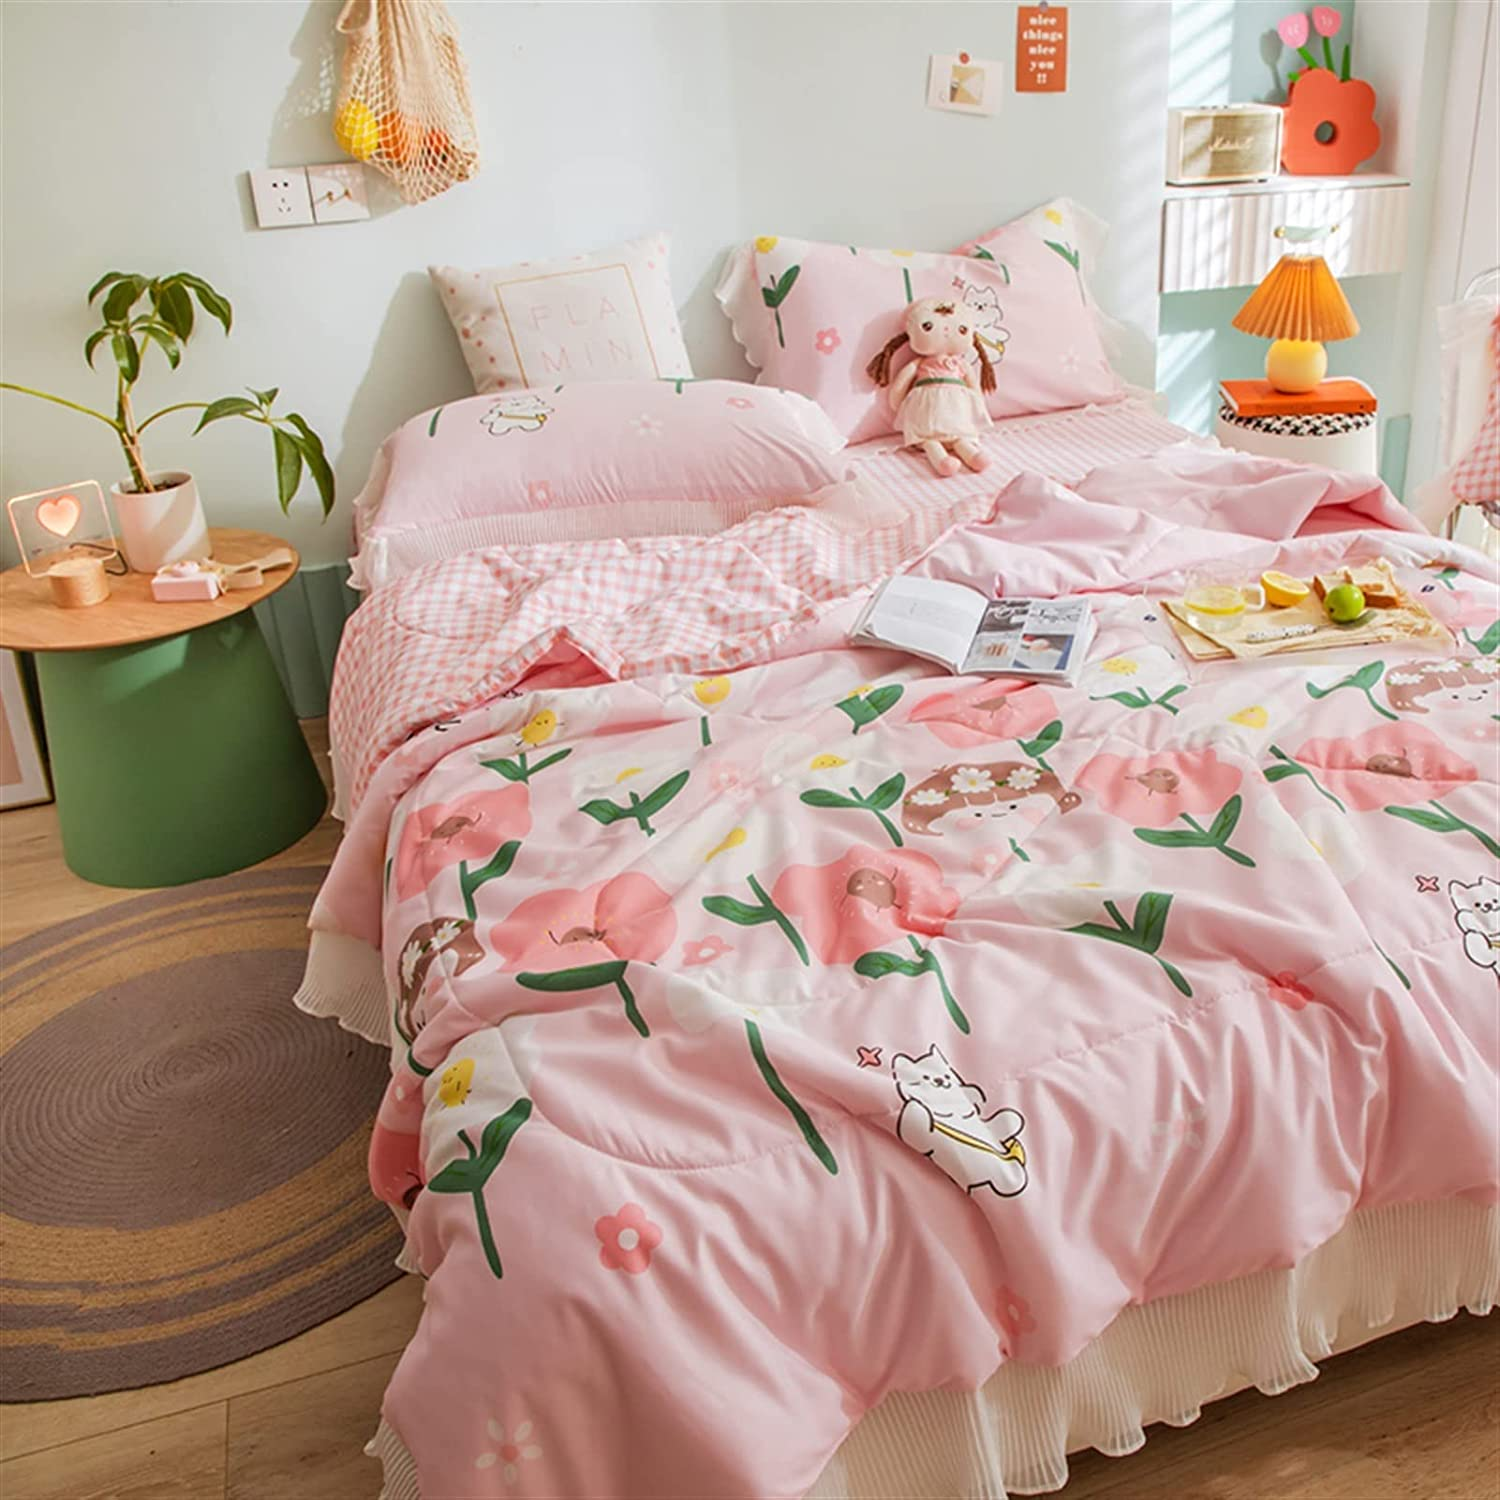 VINVITO Cloud Lace Freshness Max 84% OFF Quilt New Sheet Low price Set Pi Summer Duvet